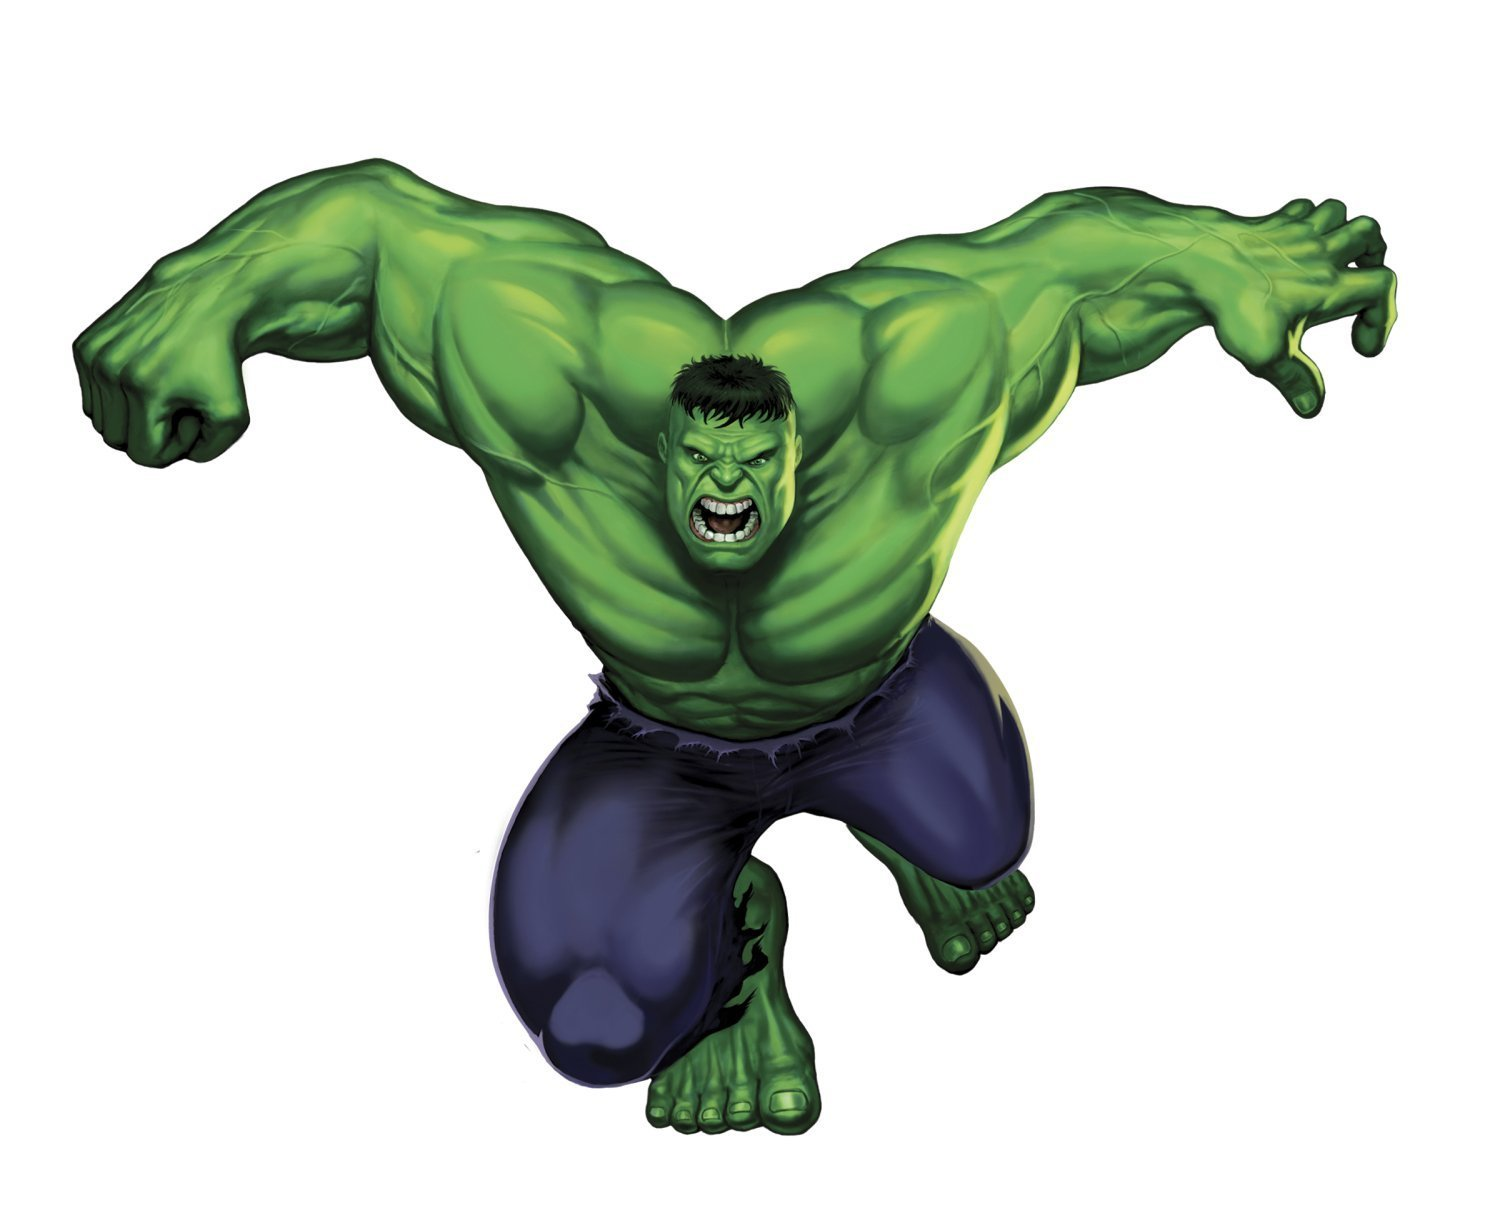 Marvel Heroes Comic - Avengers - The Incredible Hulk Giant Wall Decal by Marvel (Image #1)